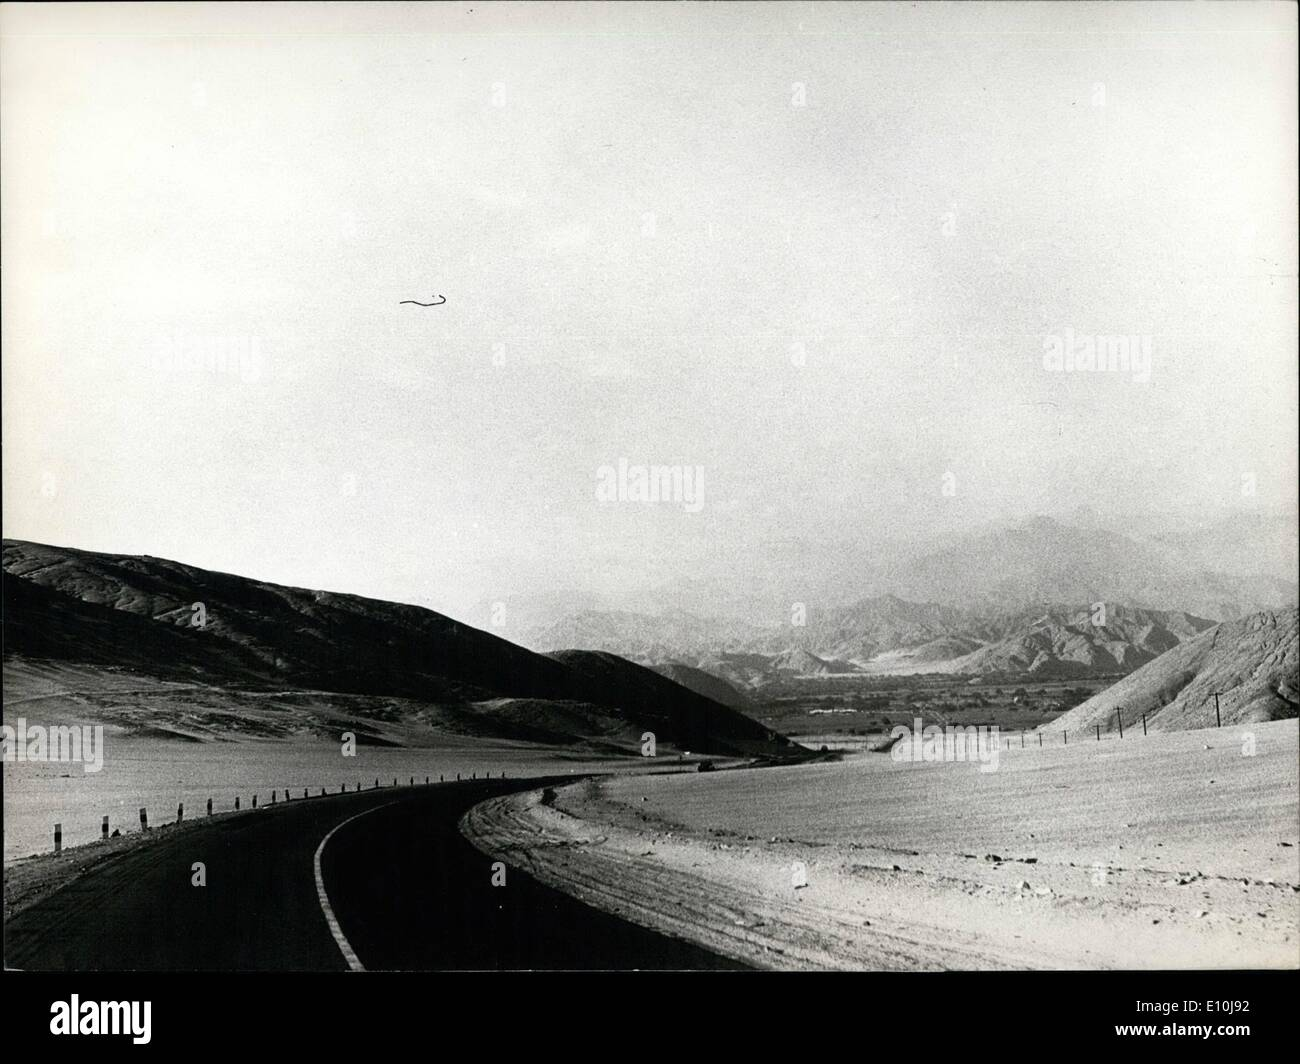 Dec. 12, 1972 - The Panamericana crosses entire South America : Lima Peru The panameriana highway crosses all of south America, - Stock Image